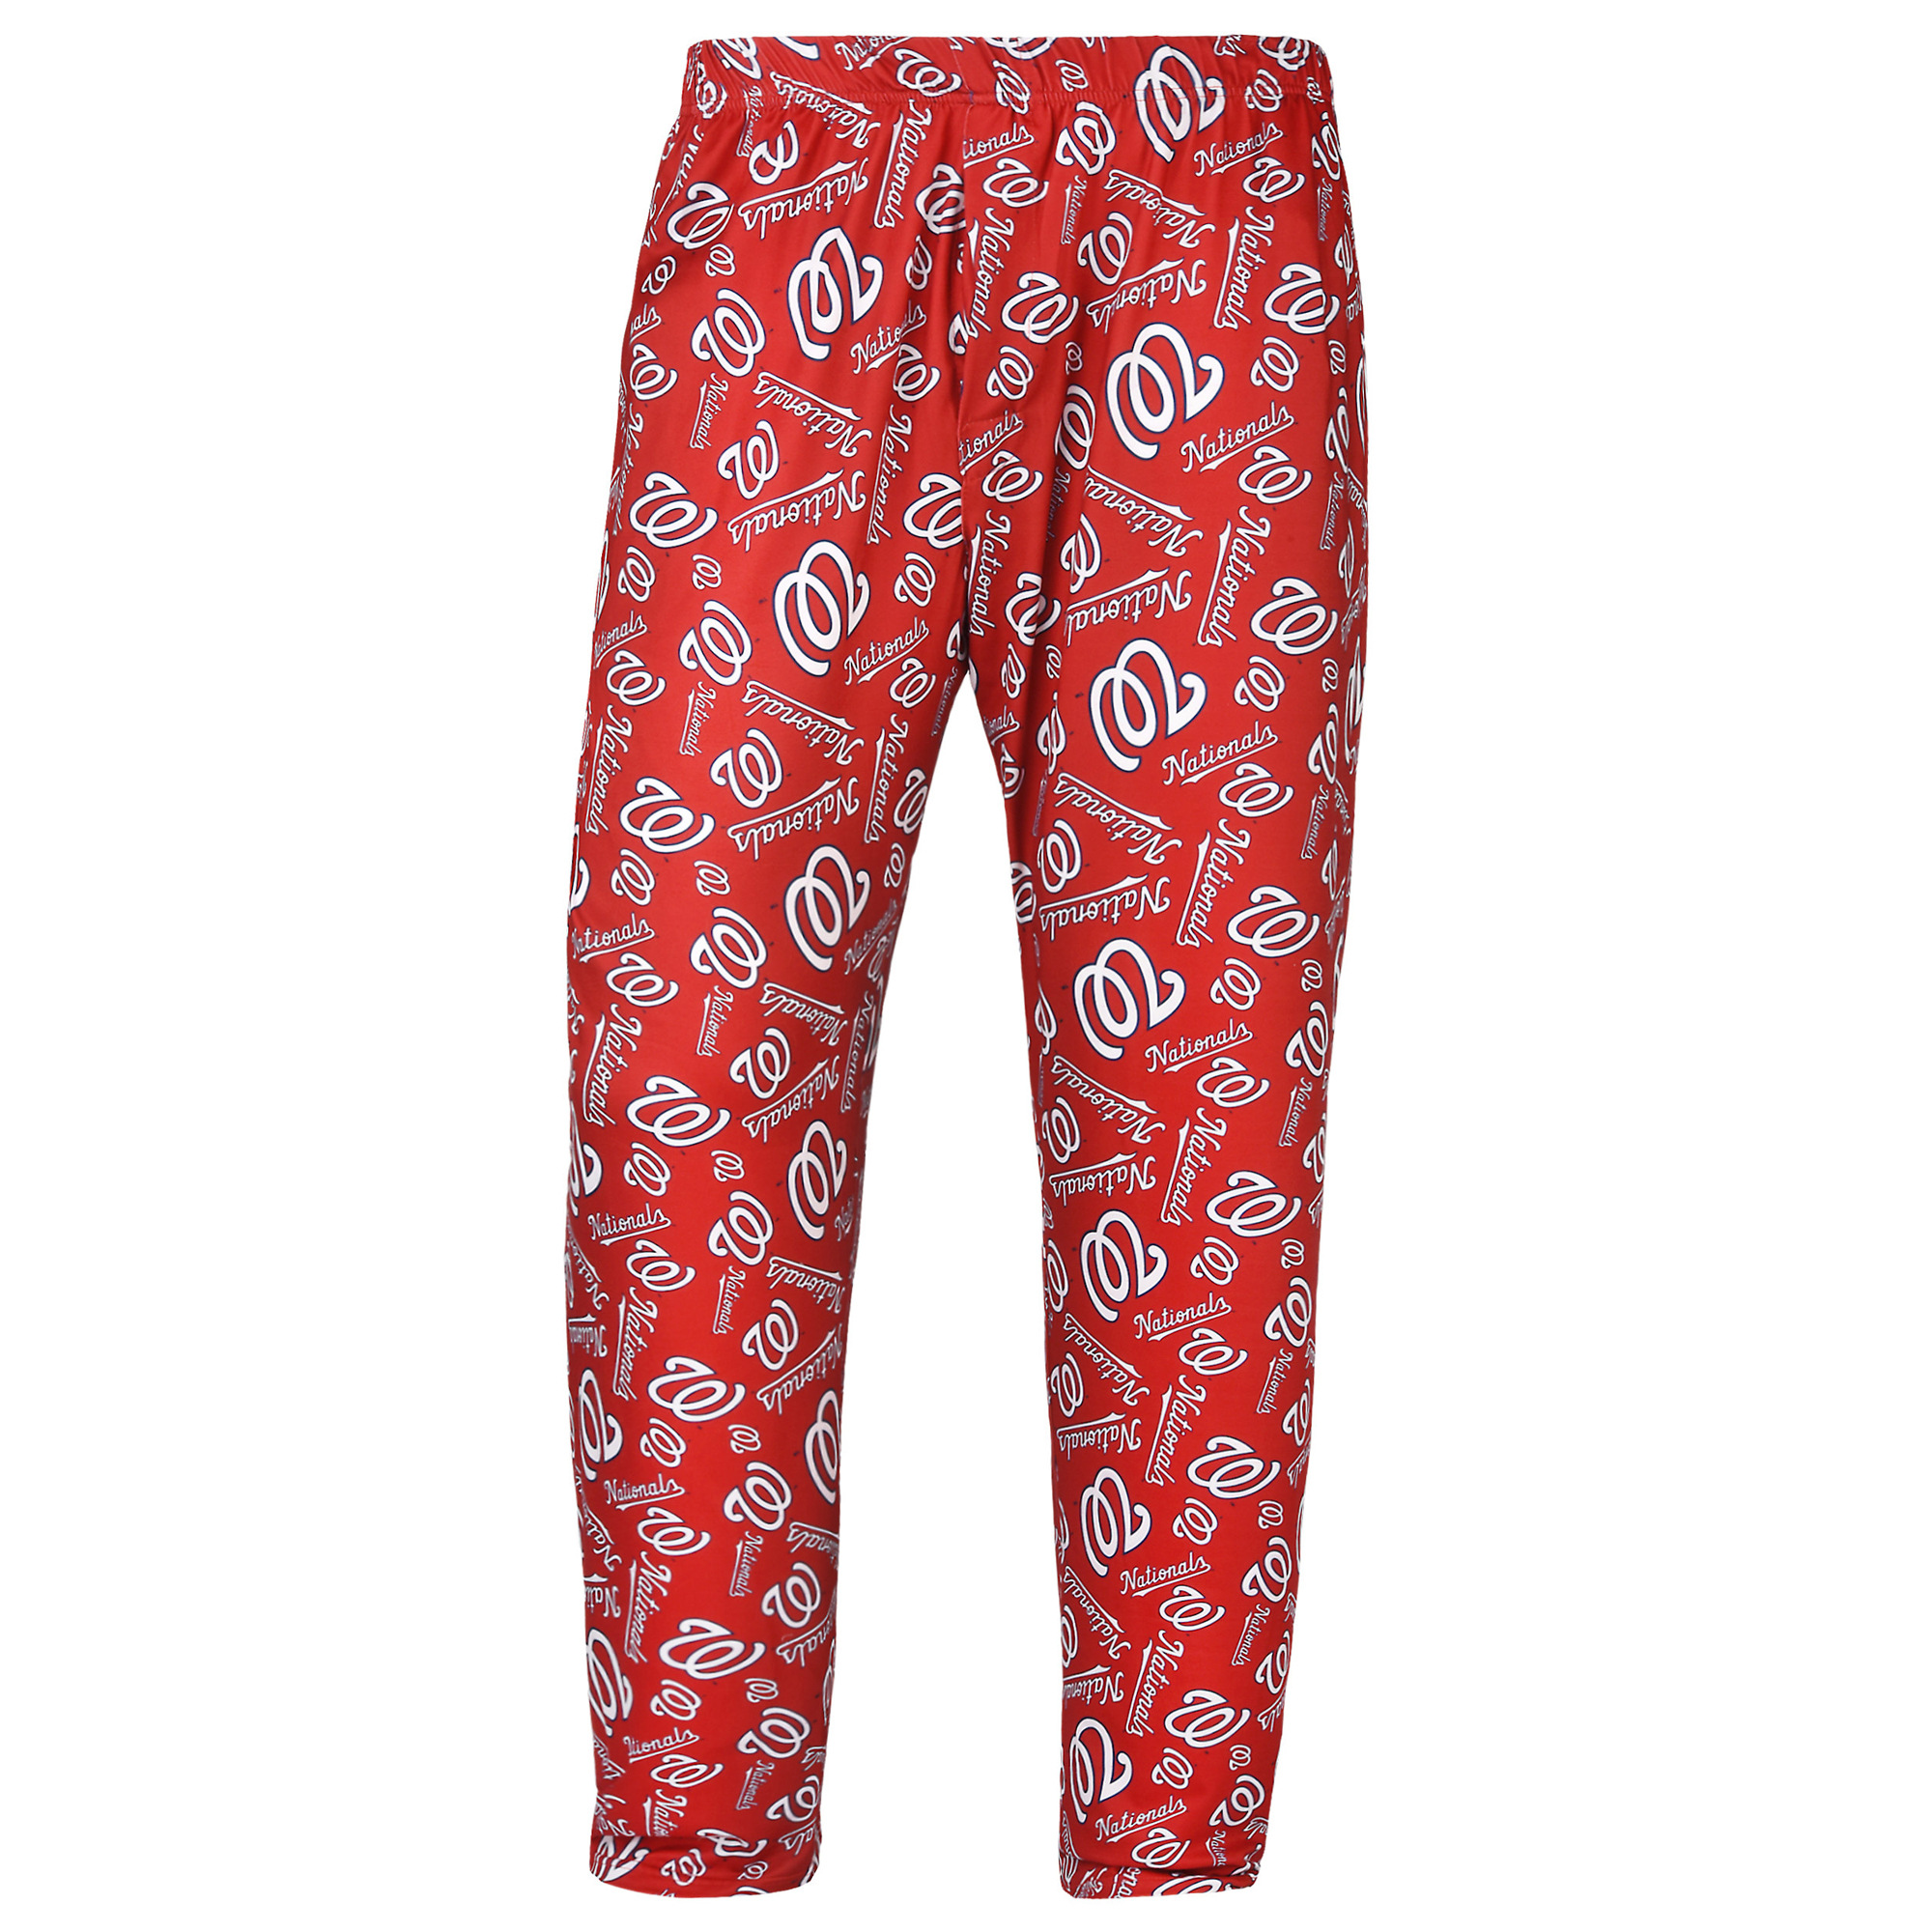 Washington Nationals Women's Repeat Polyester Print Pants - Red